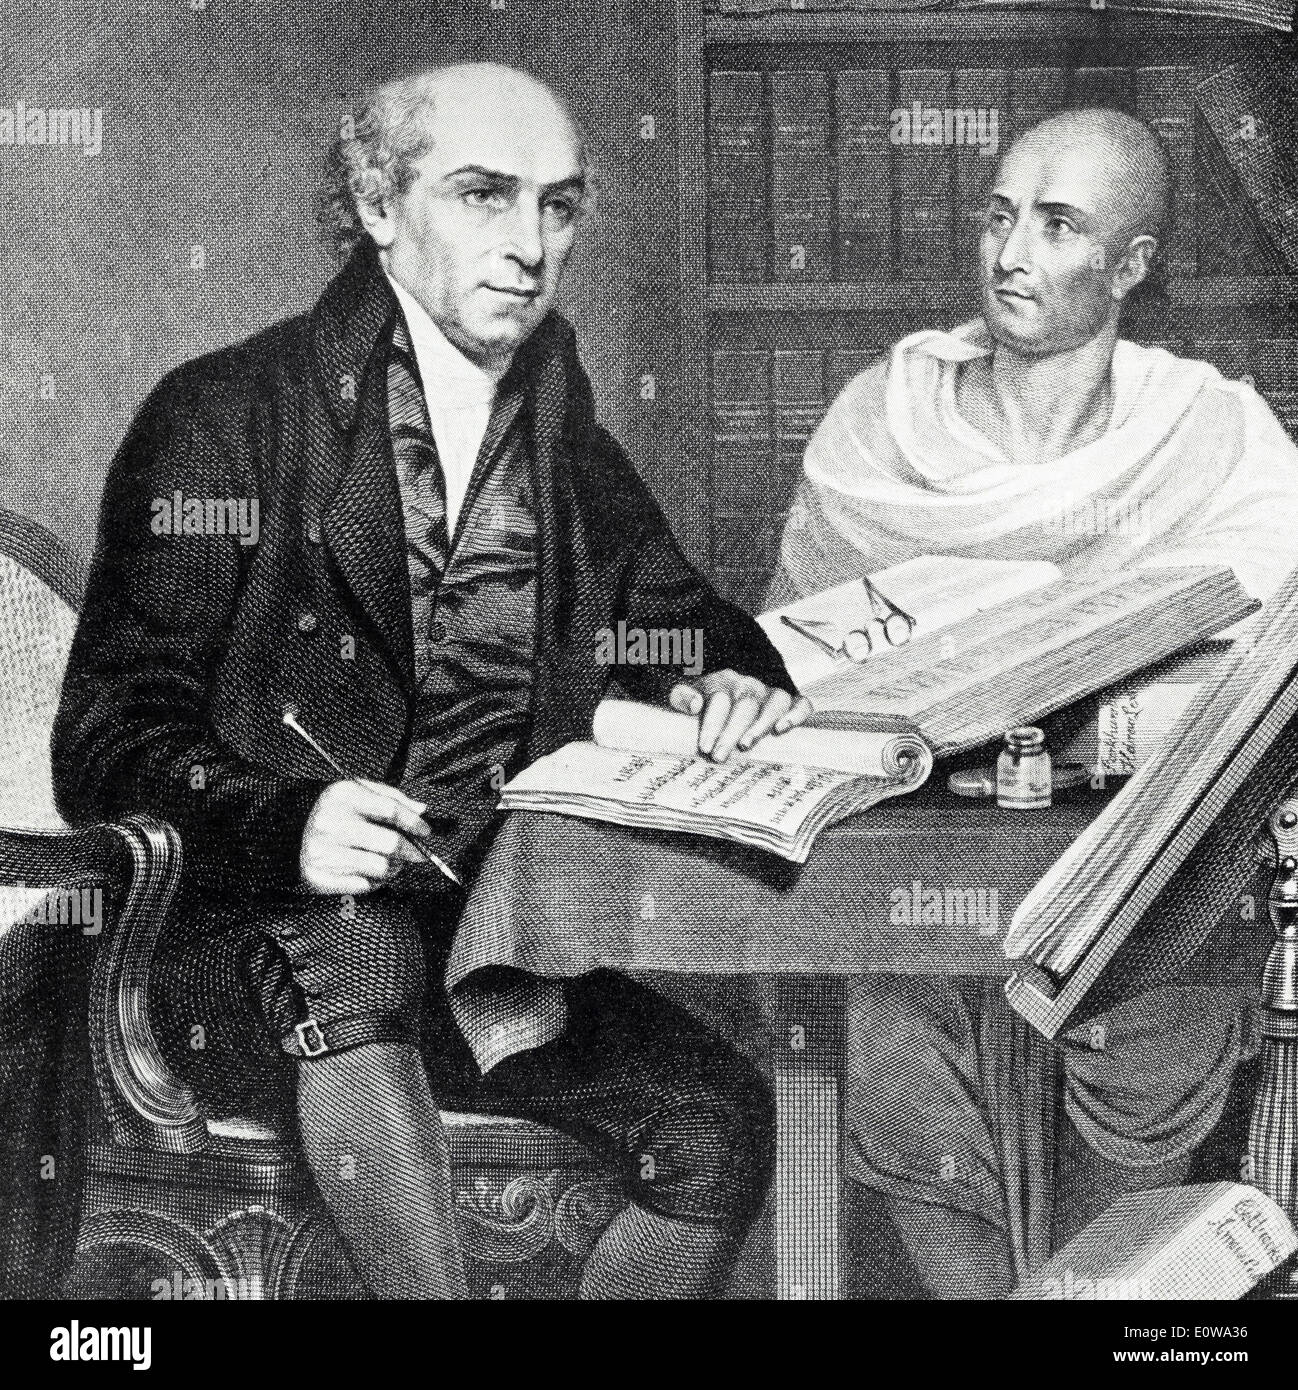 William Carey, Baptist missionary studying with his Brahmin Pandit at Fort William College early 19th century - Stock Image